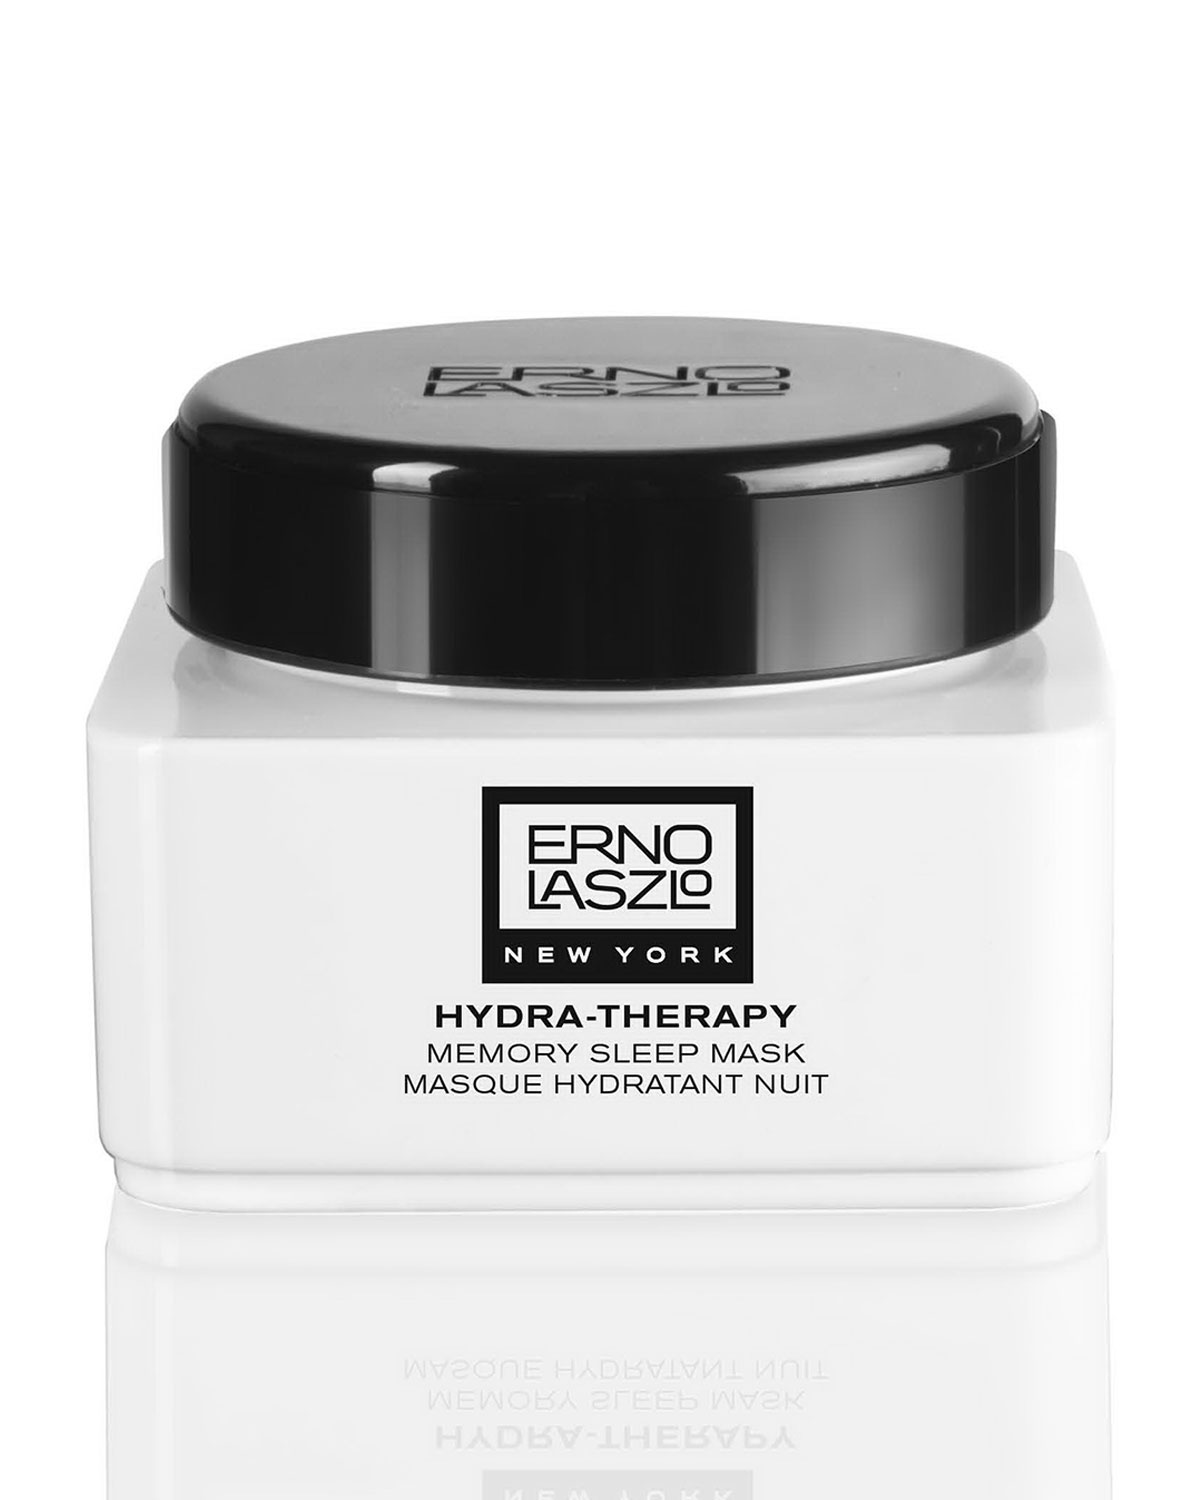 Hydra-Therapy Memory Sleep Mask, 40Ml - One Size in Colorless